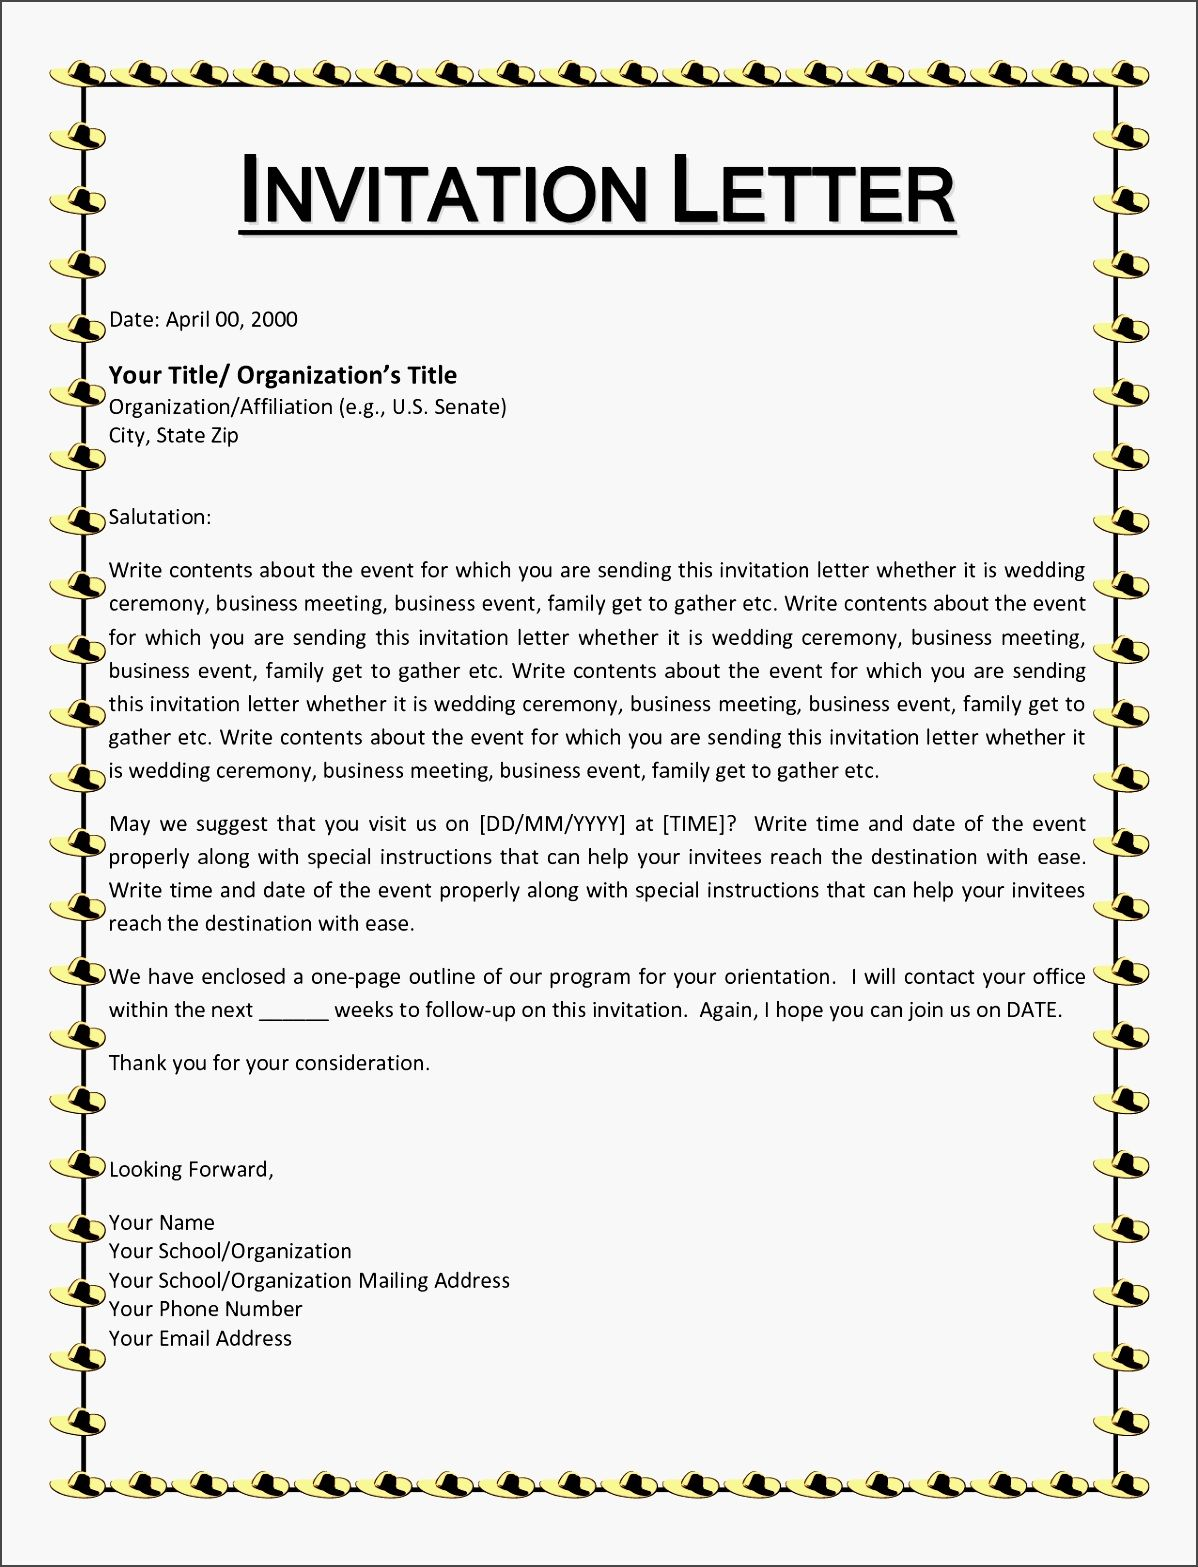 invitation letter informal saevk beautiful wedding invitation letter informal wedding invitation letter